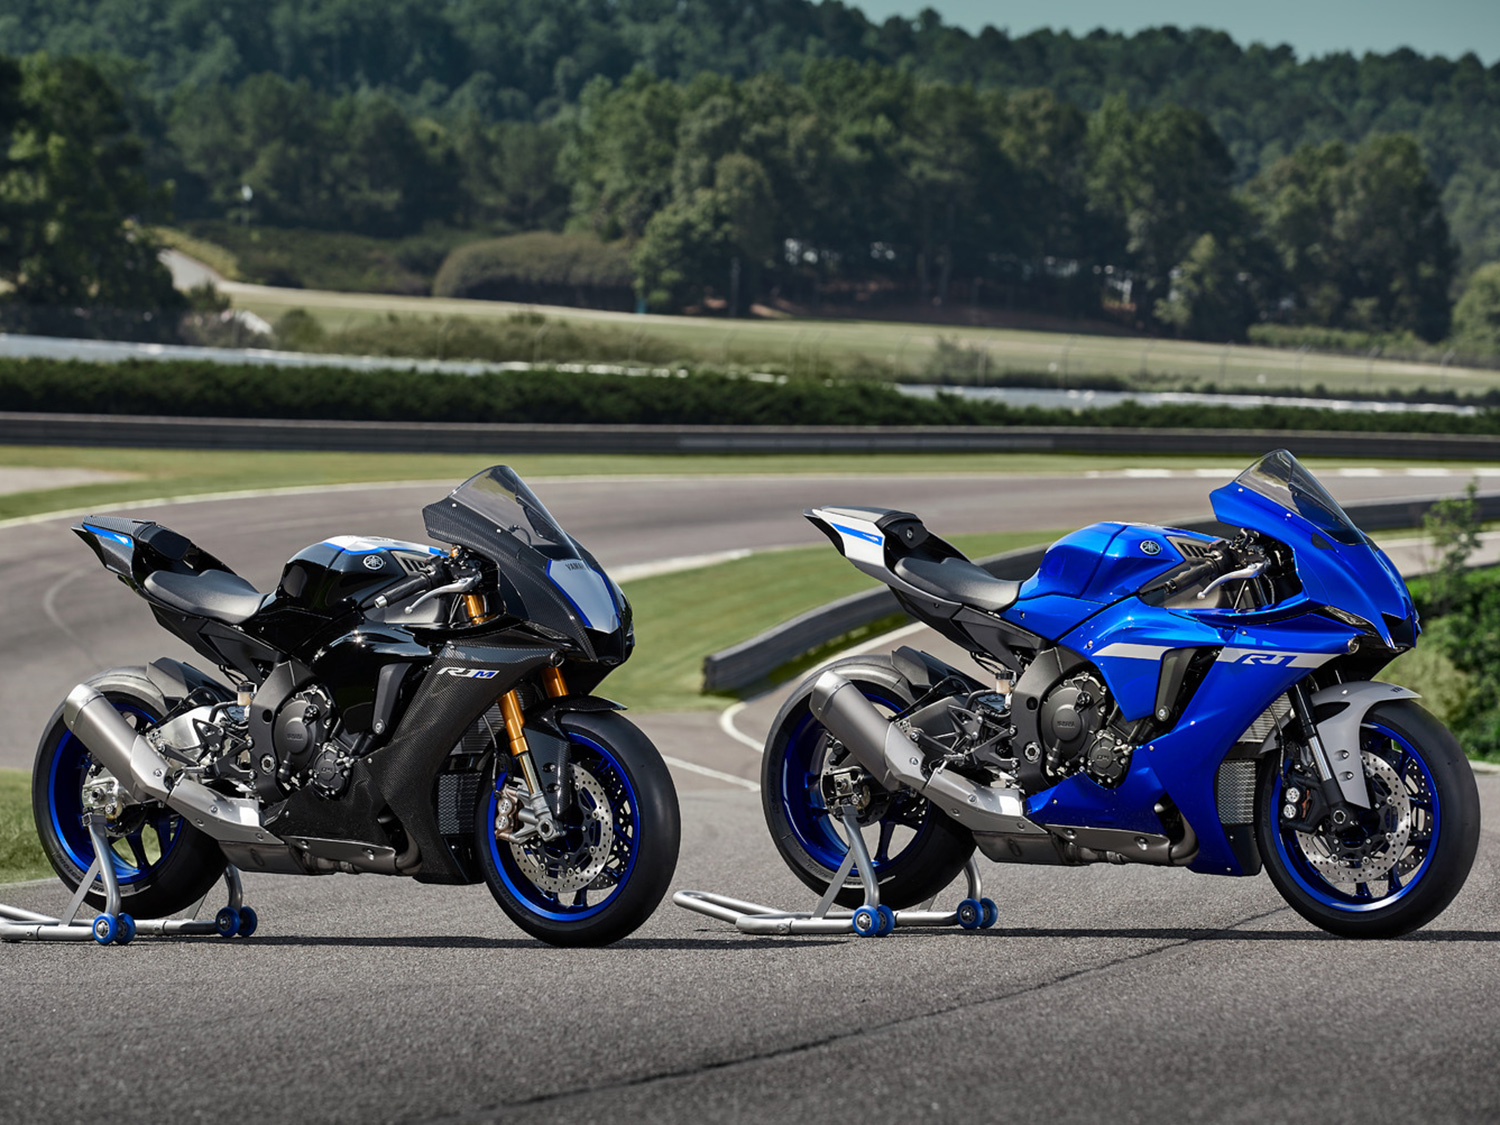 2020 Yamaha Yzf R1m And Yzf R1 First Look Cycle World